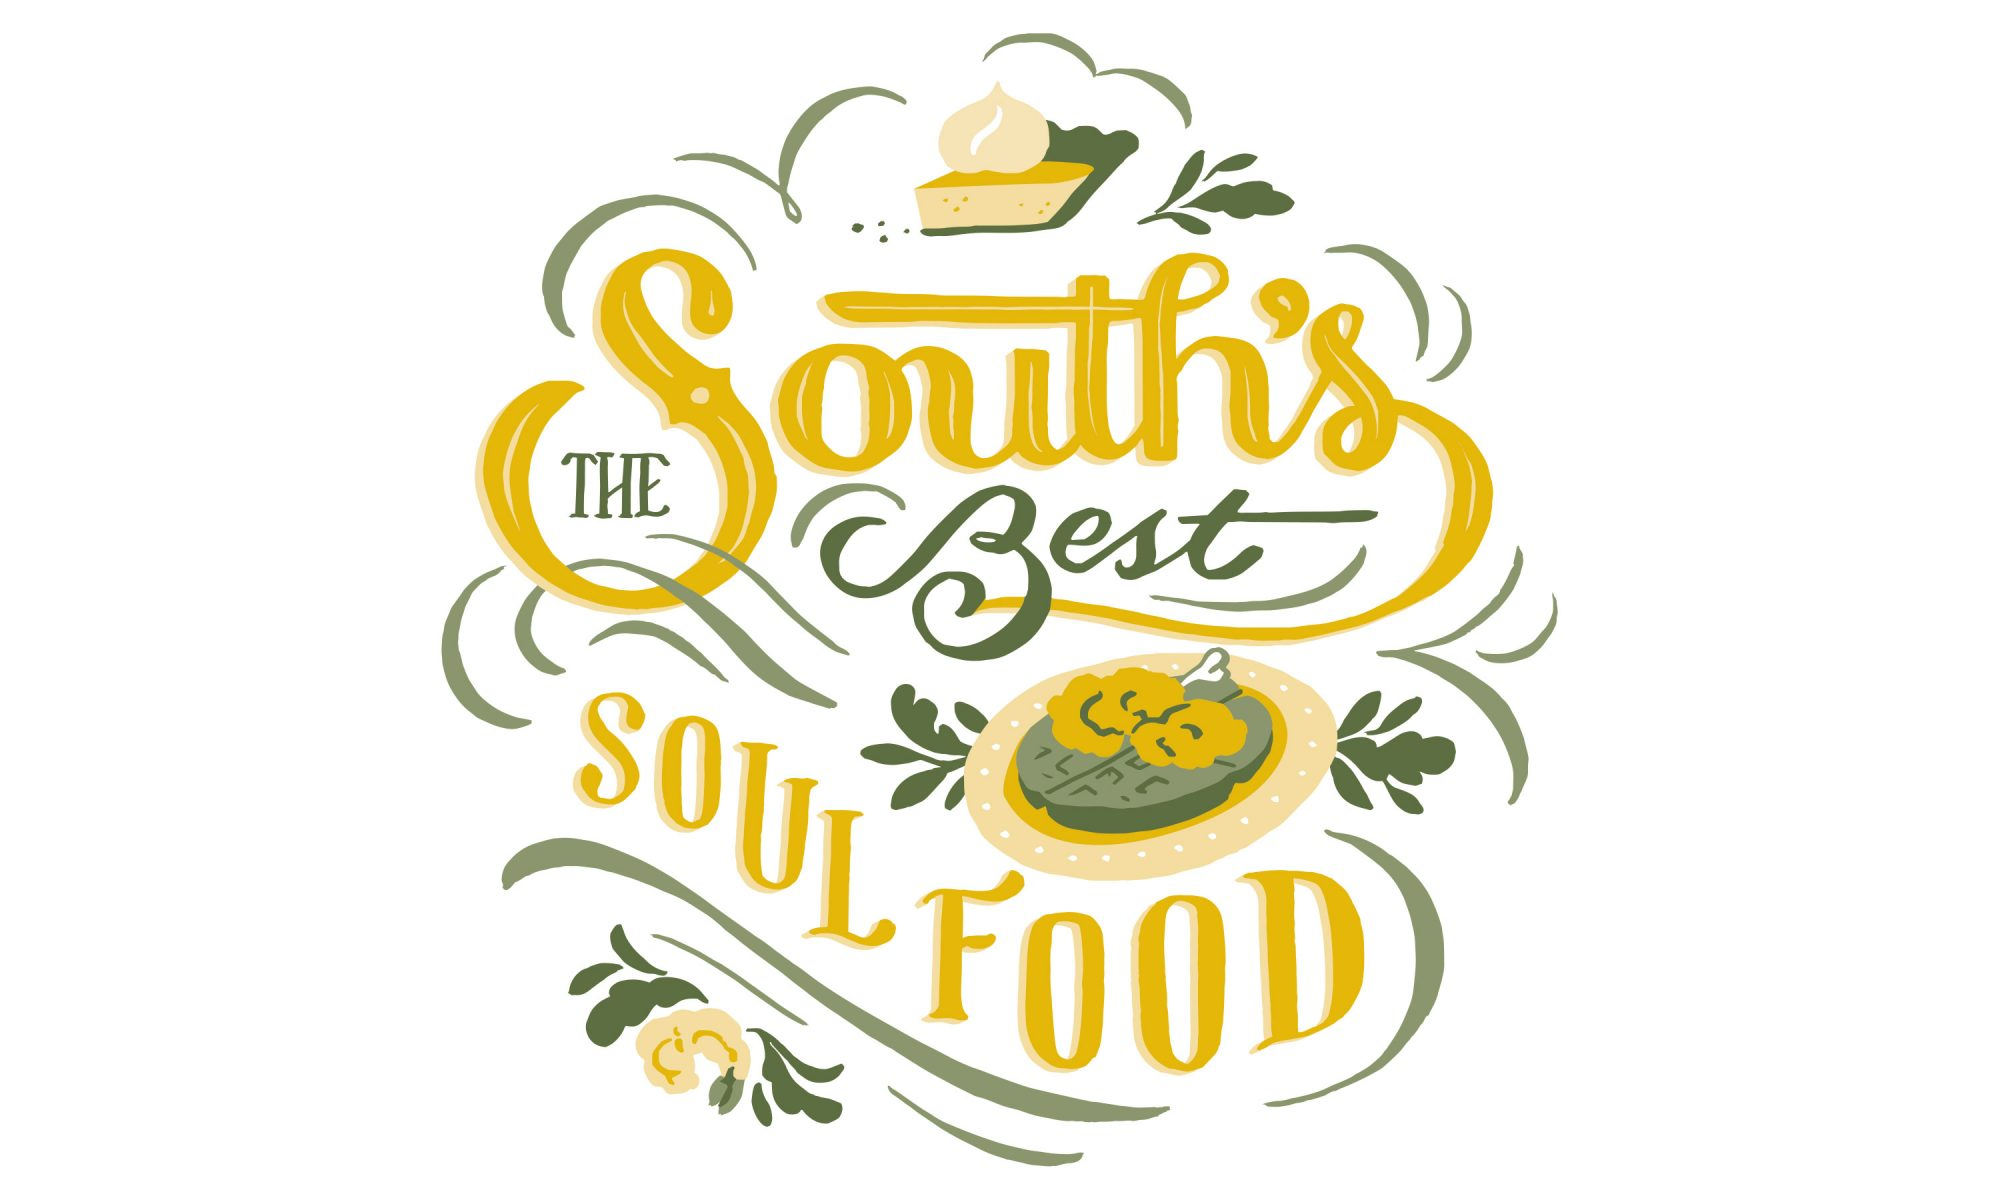 The South's Best Soul Food